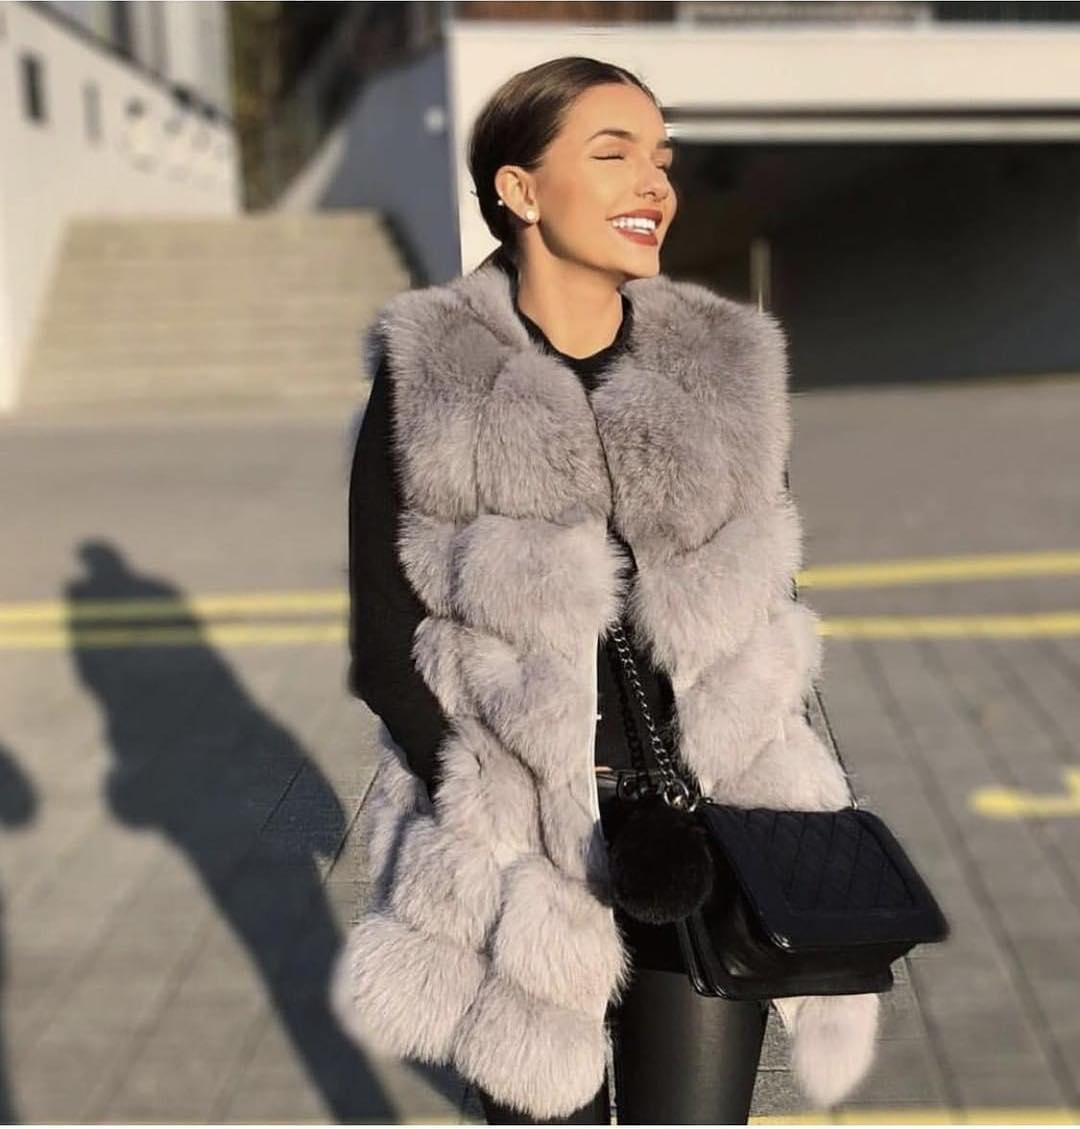 Sleeveless Fur Vest In Grey With Black Sweater And Black Leather Pants 2019